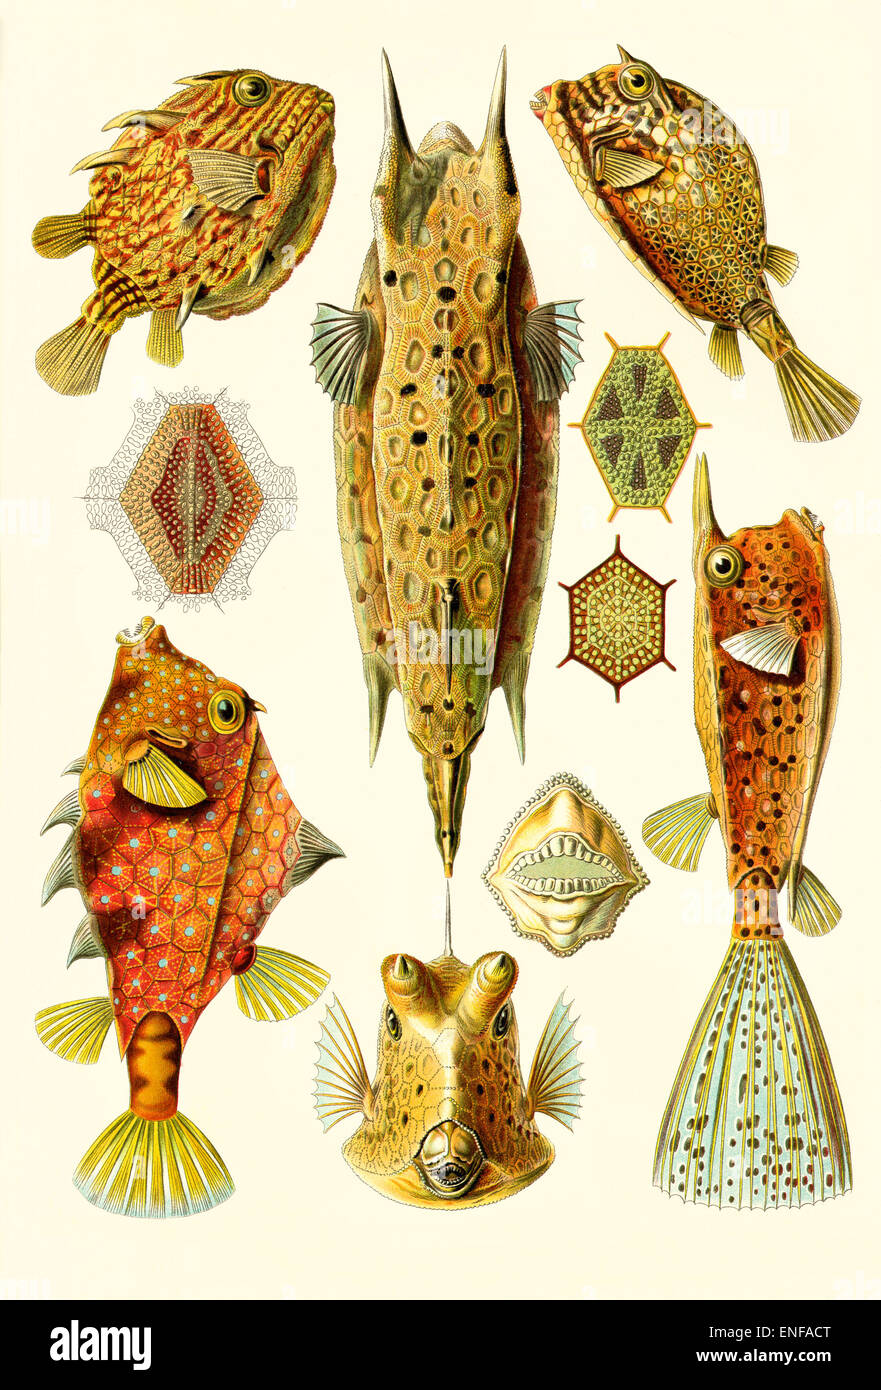 Ostraciontes (Trunkfishes), by Ernst Haeckel, 1904 - Editorial use only. - Stock Image